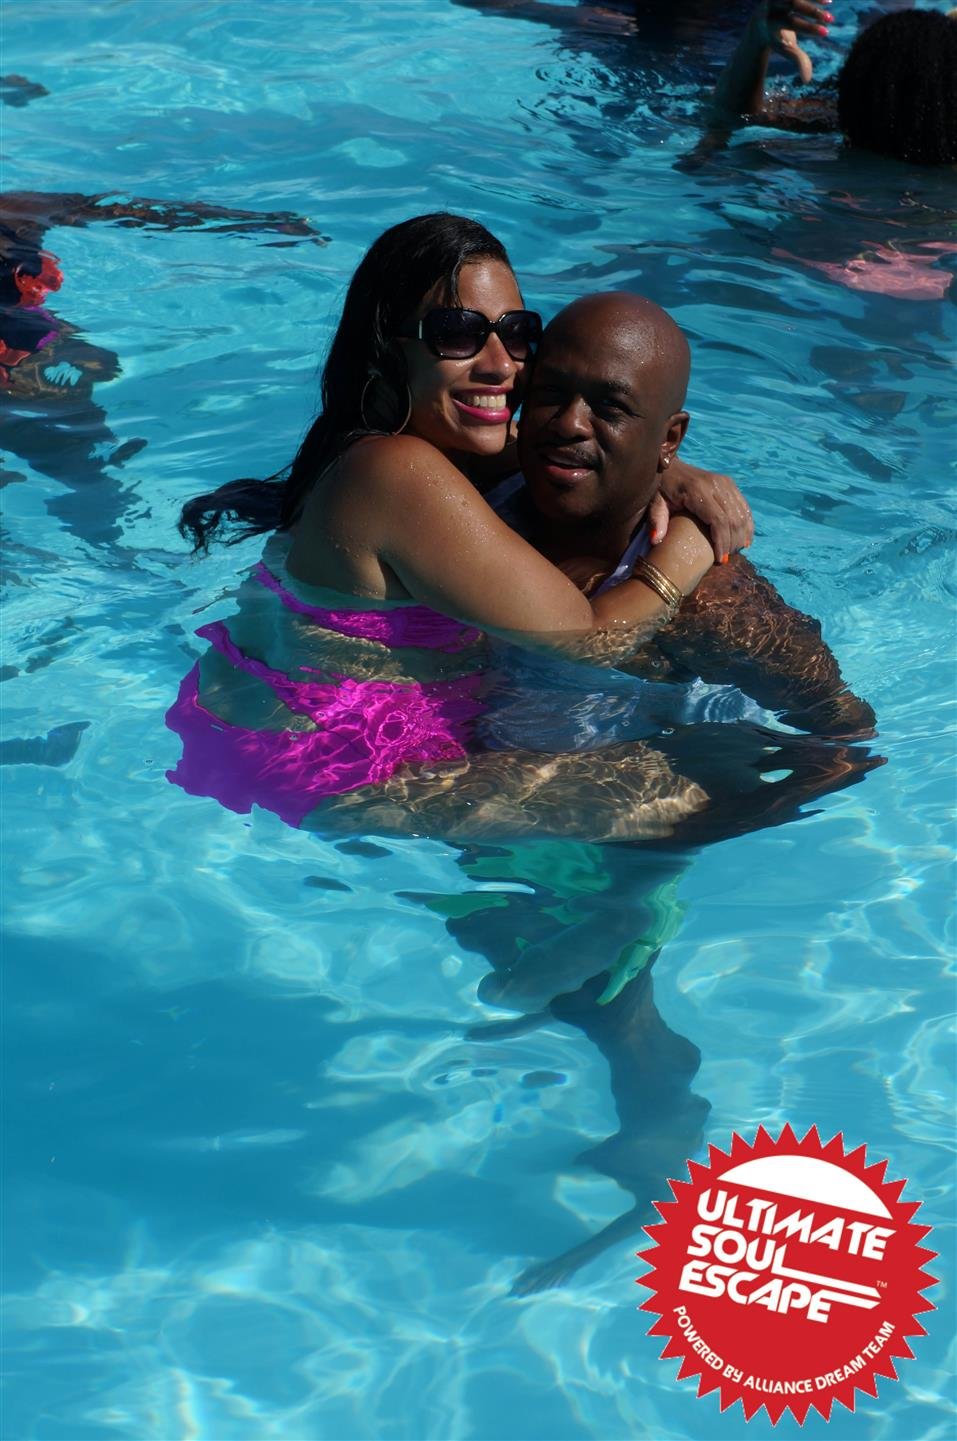 A men holding a girl up in the pool